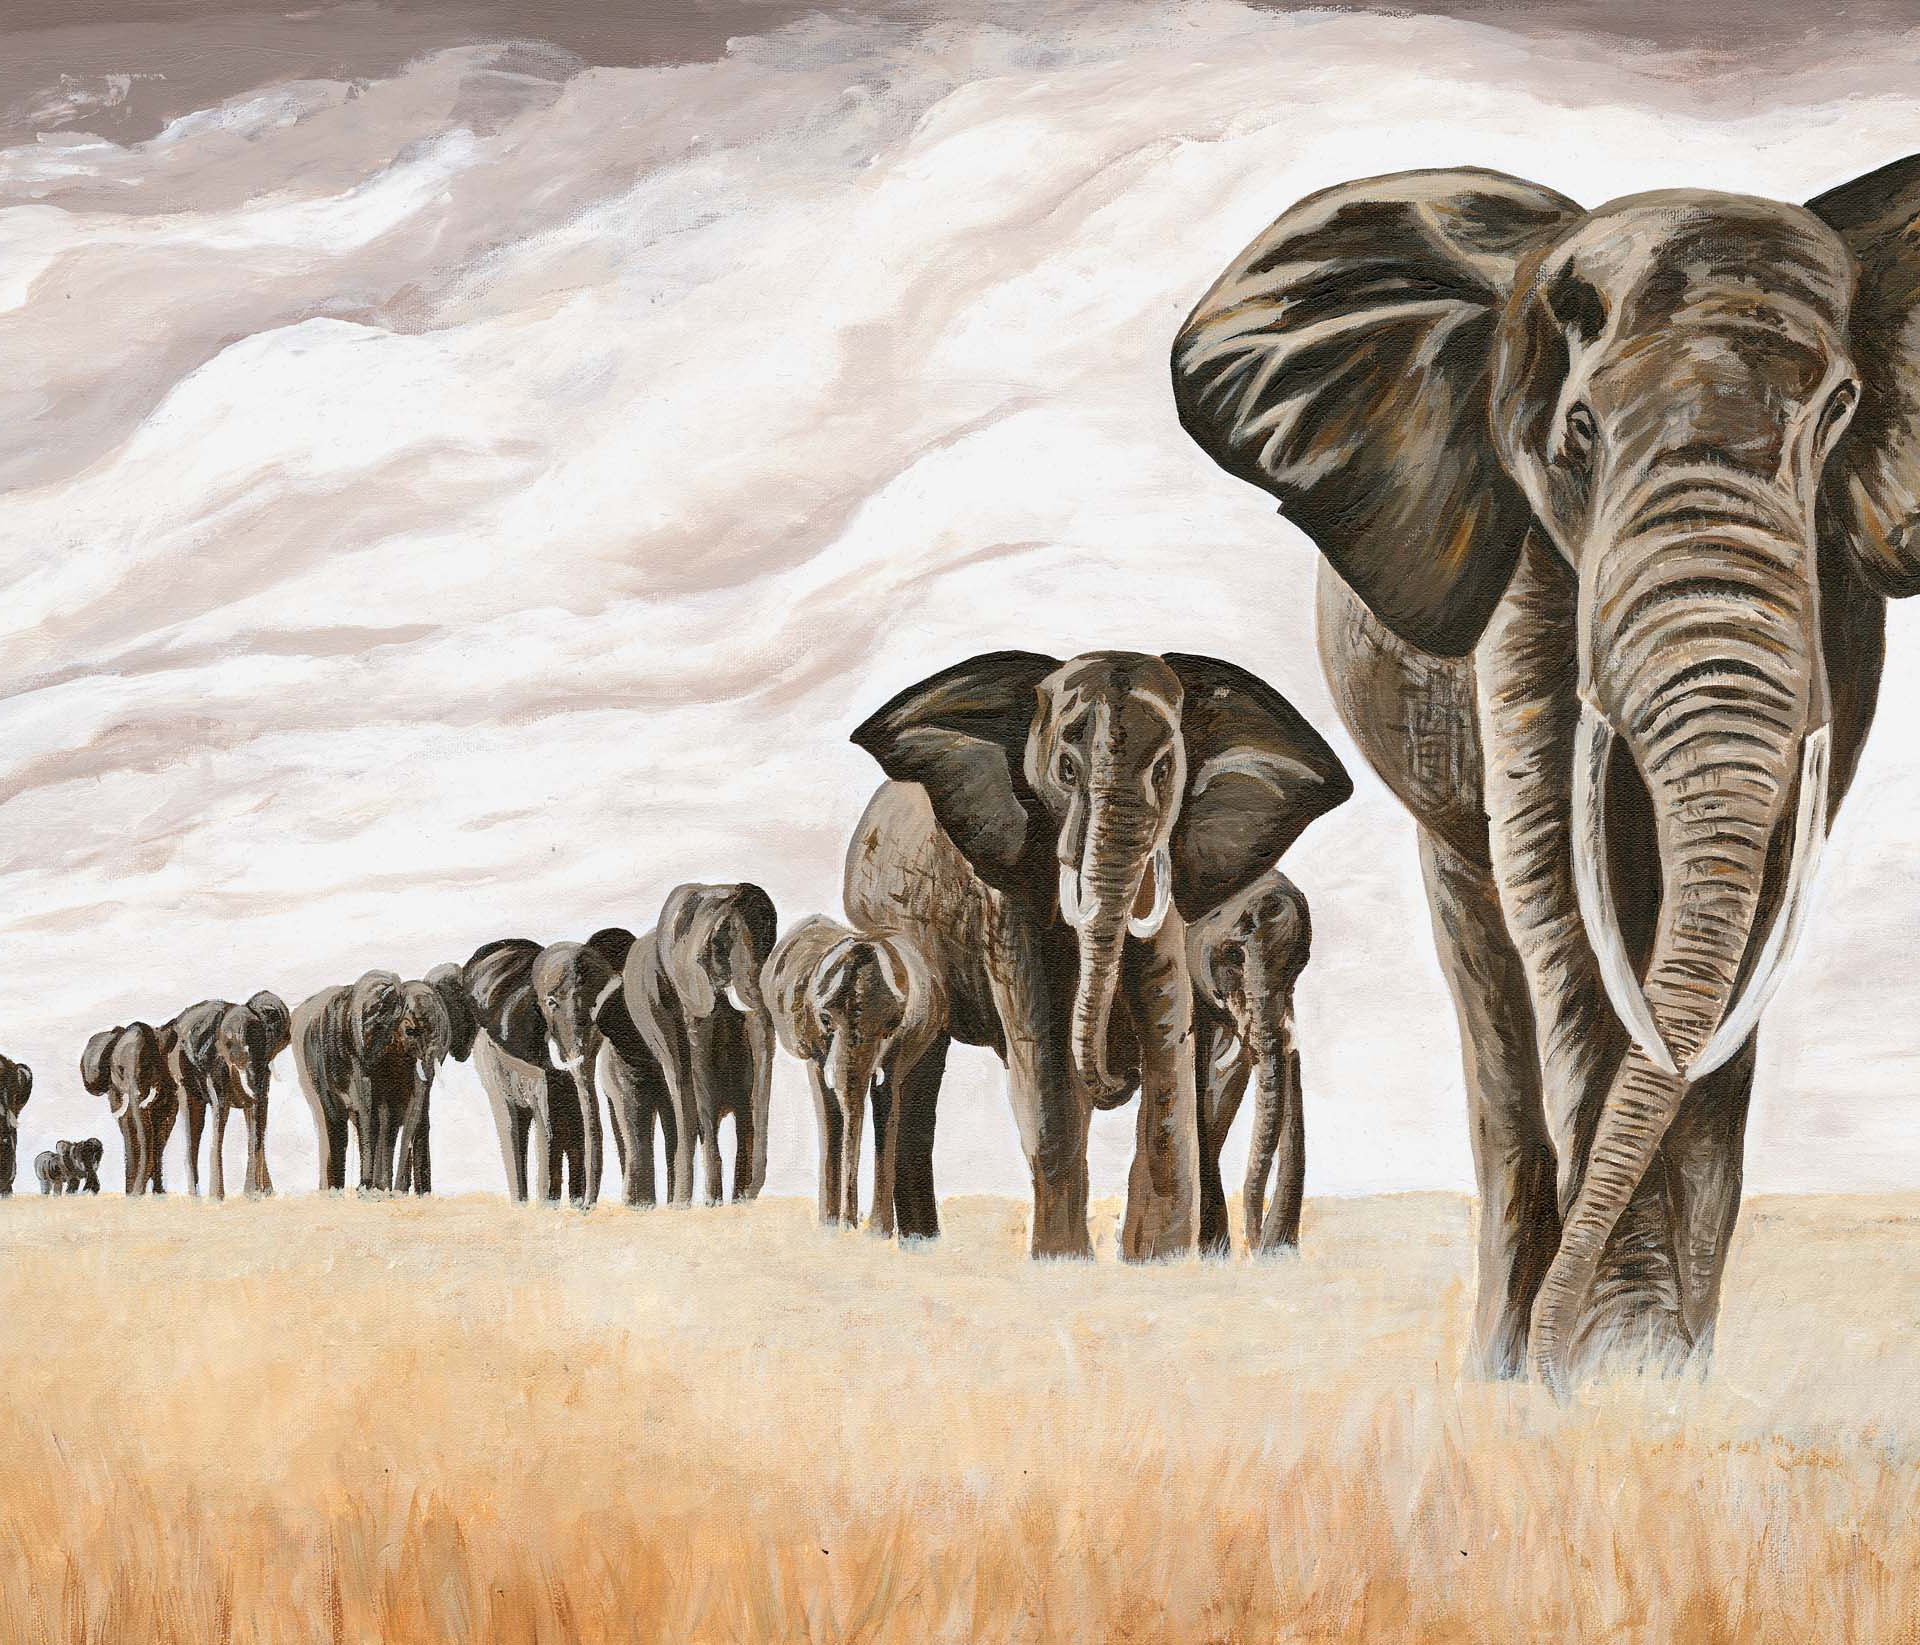 Elephants on Safari 80 x60 cm, Katie Nathan